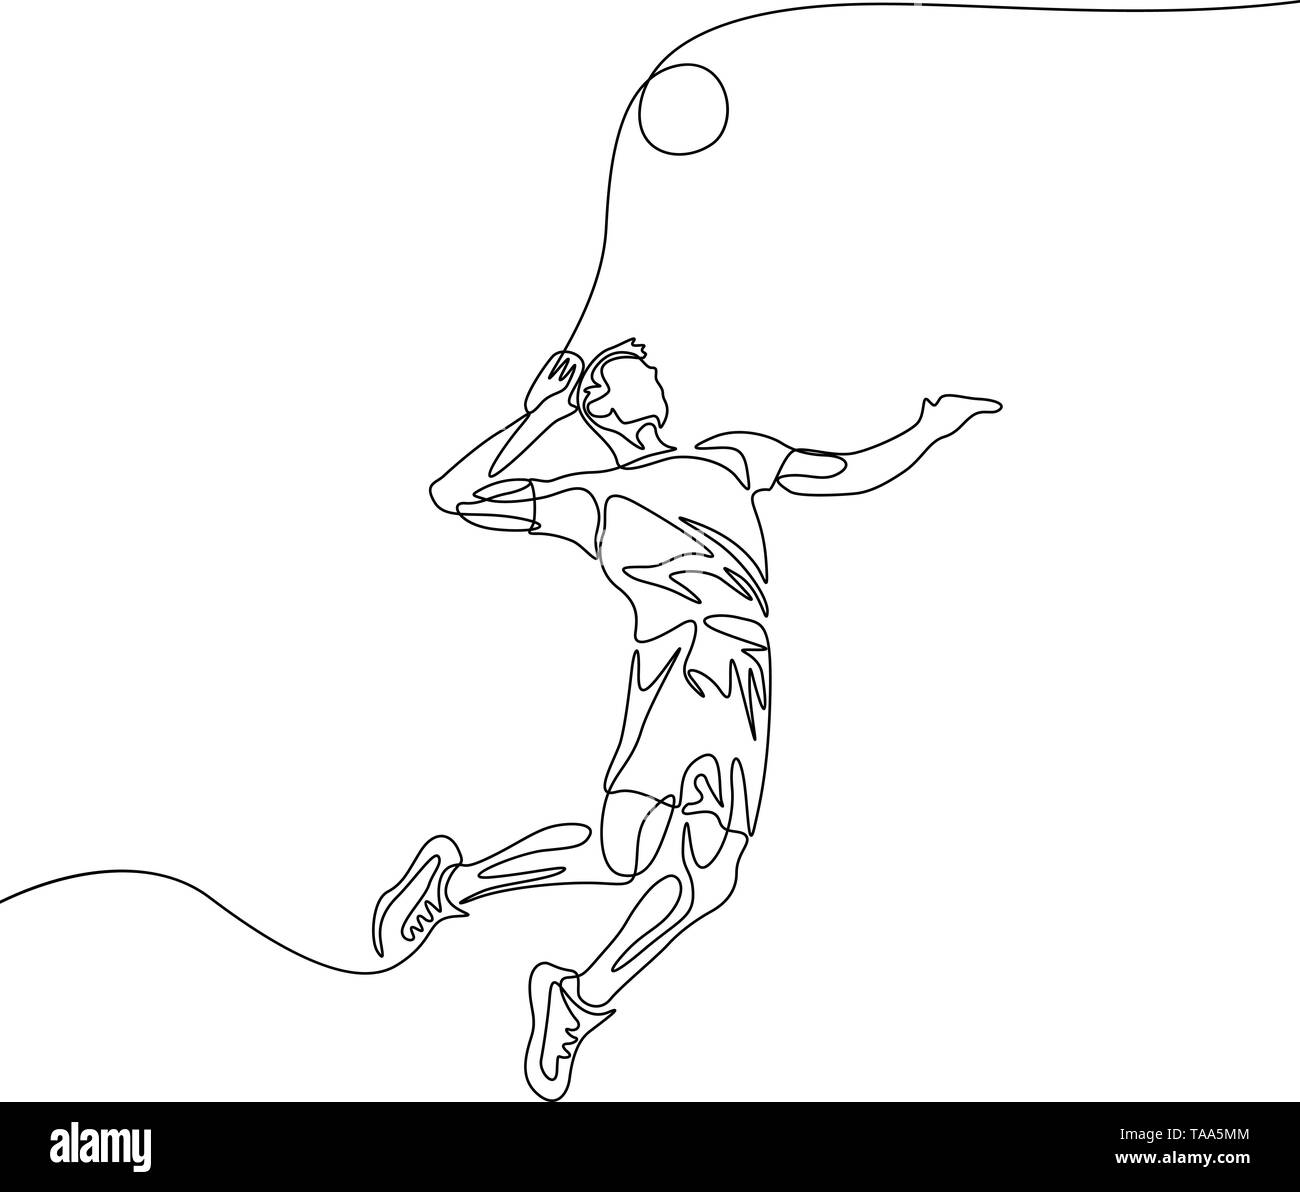 Continuous one line volleyball player man jumps to throw the ball - Stock Image